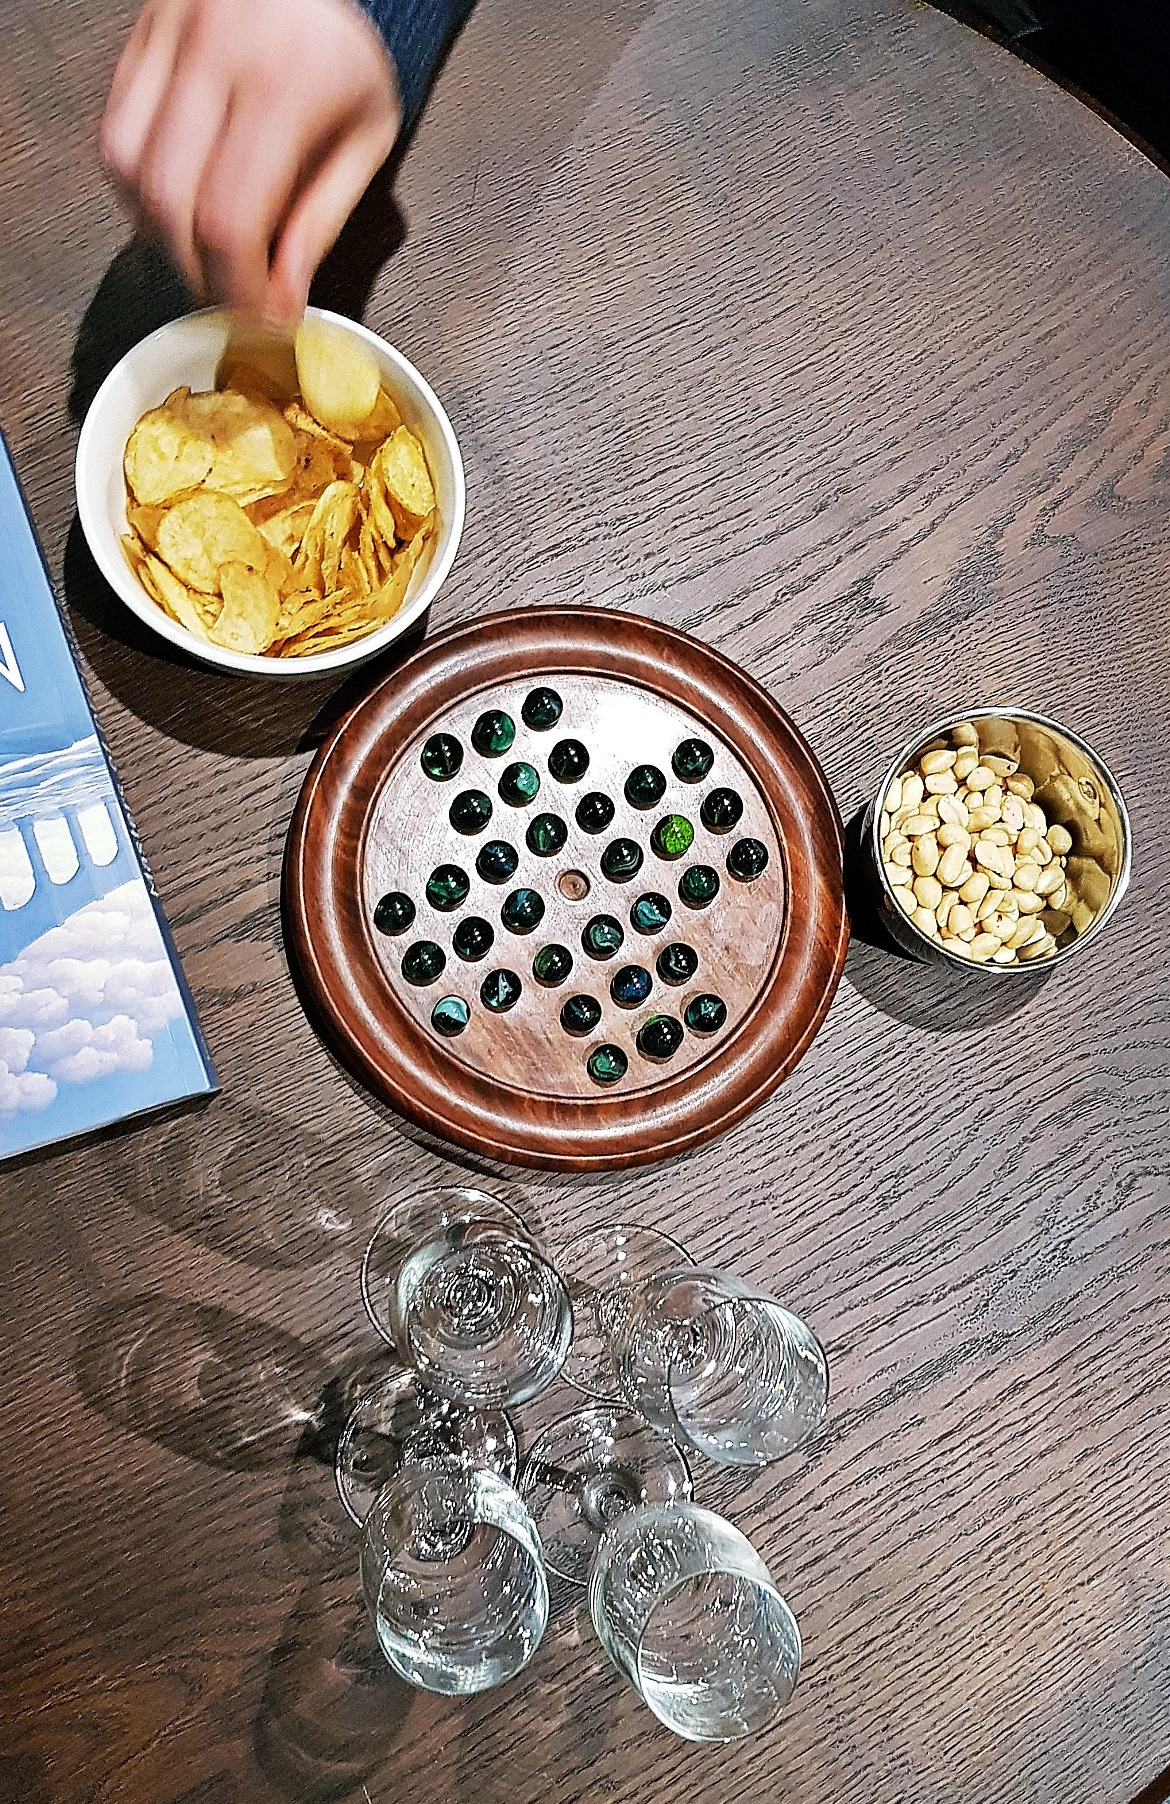 Snacks before playing the game - Our Finest Hour, escape room by Escape Hunt Leeds, review by BeckyBecky Blogs